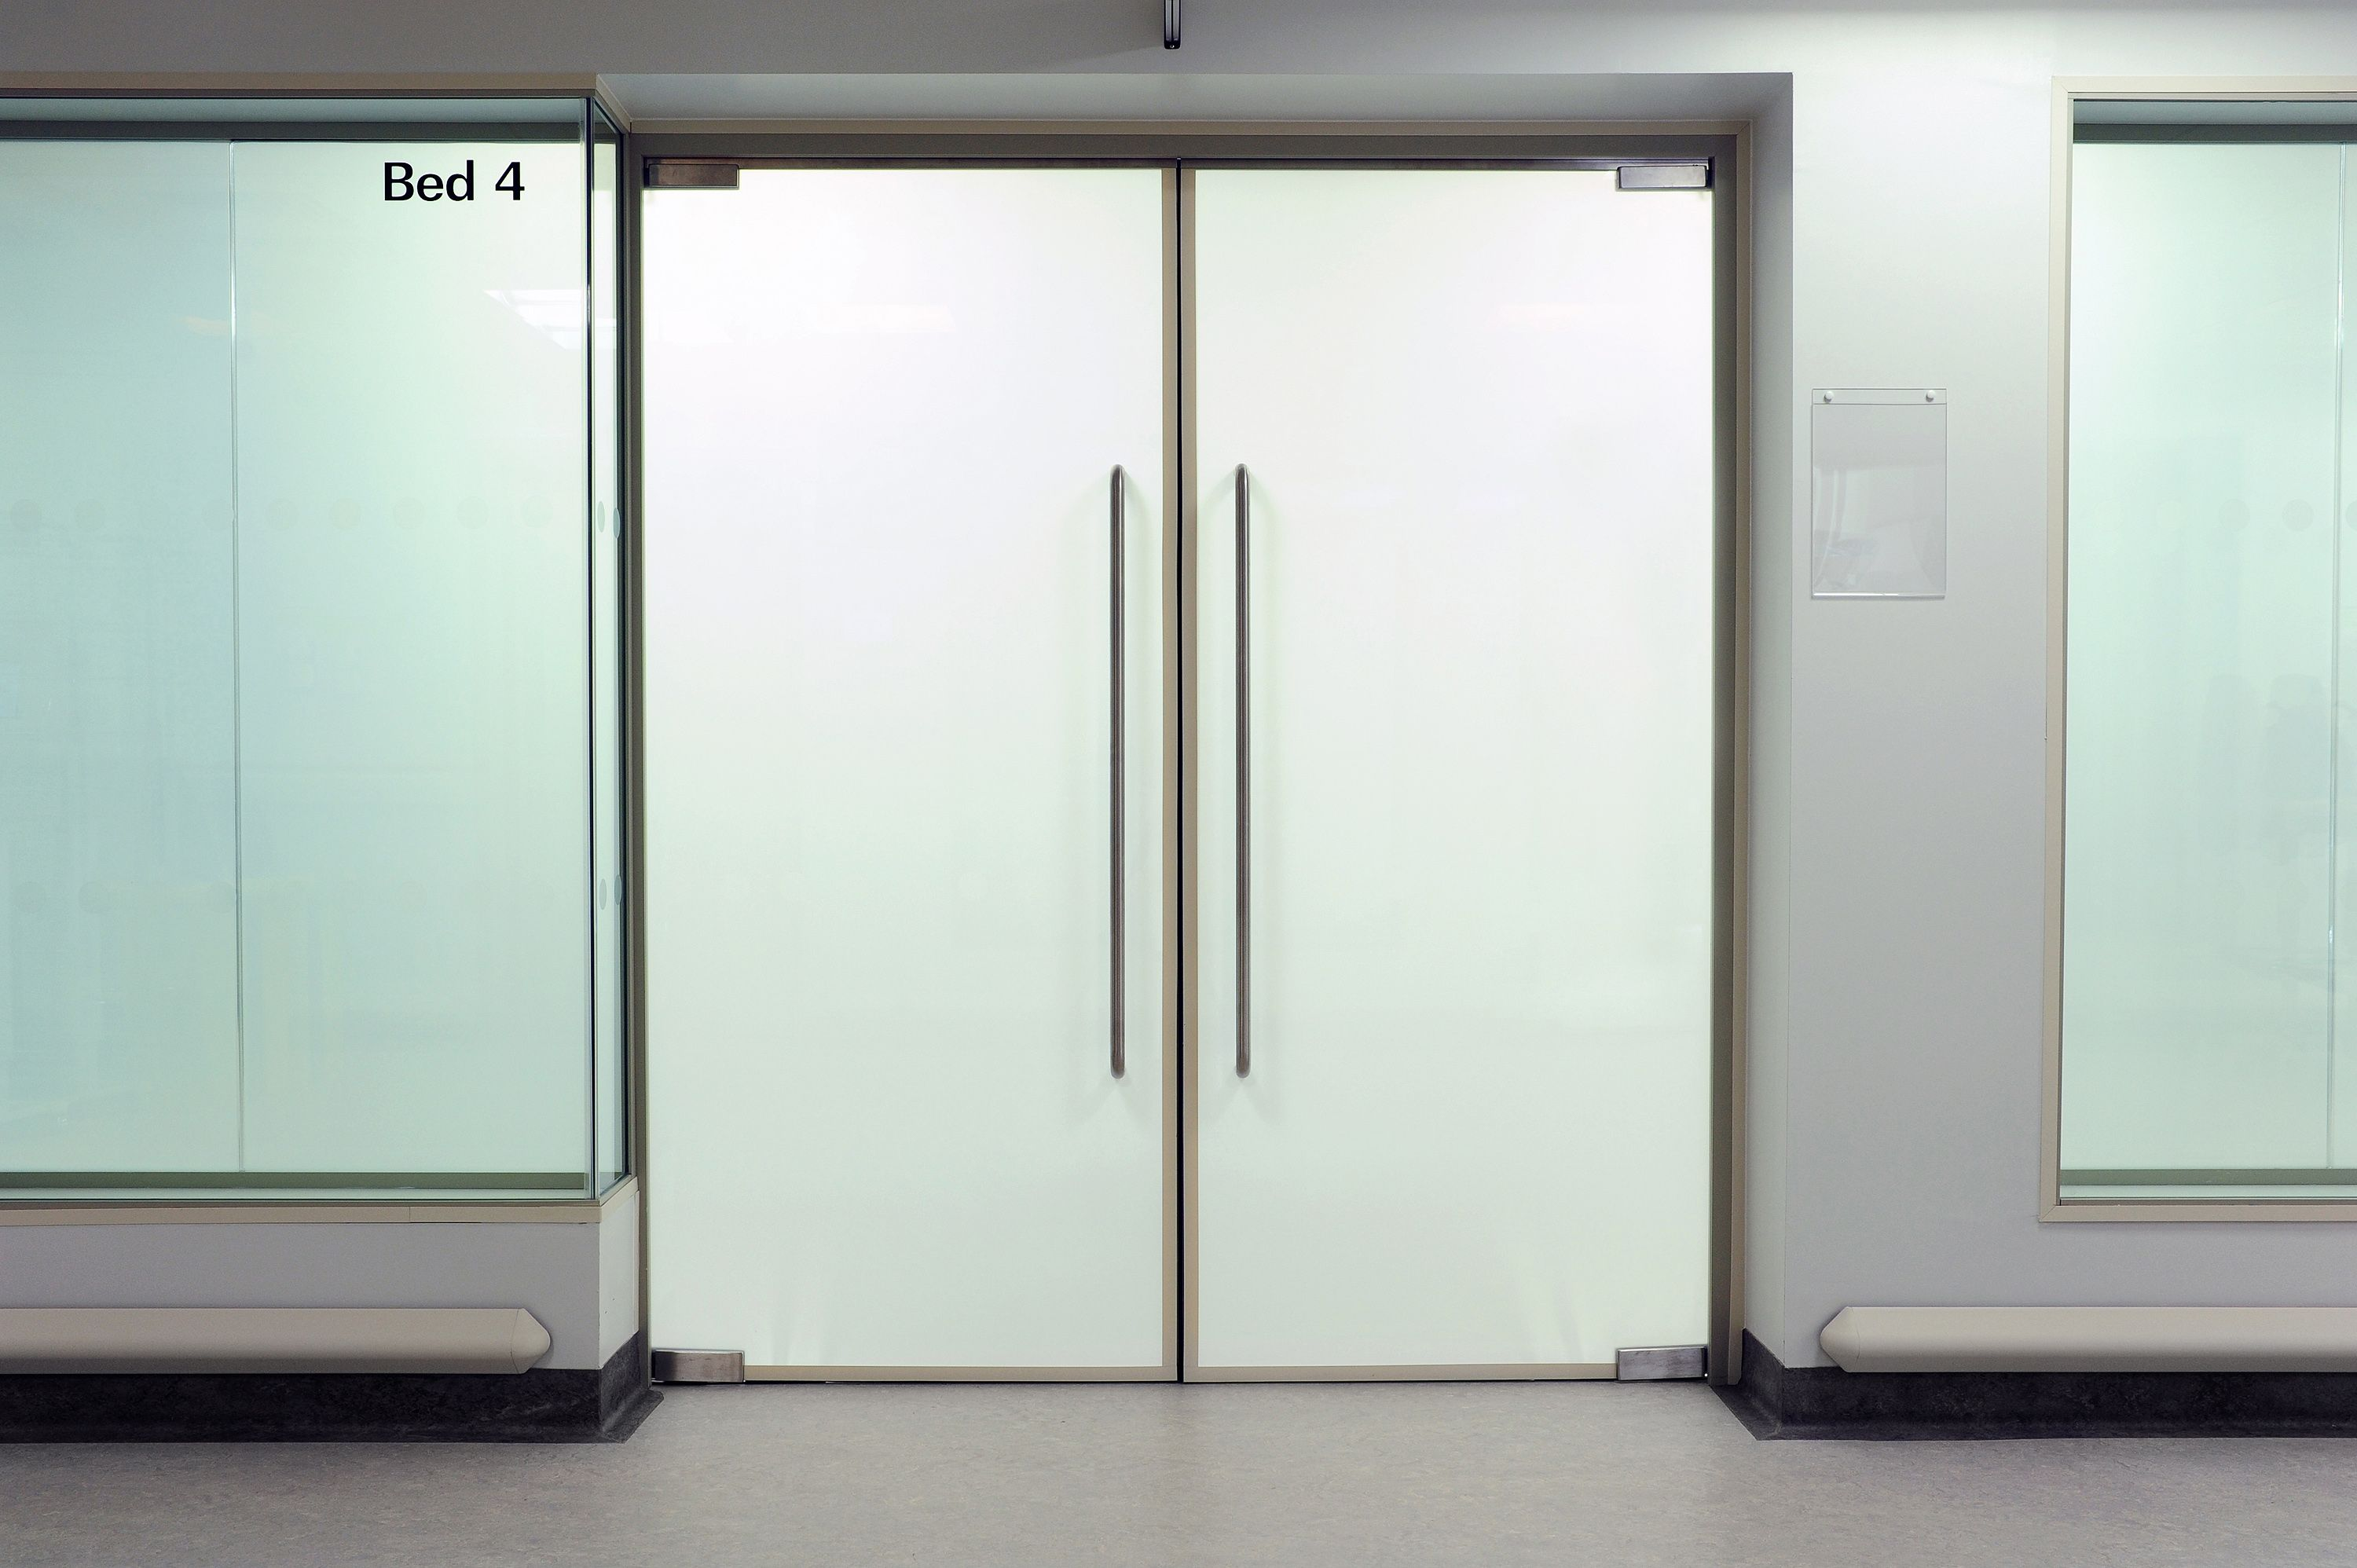 Frosted Glass Office Door Design Inspiration 26230 Ideas Amazing Project Lionel Pinterest